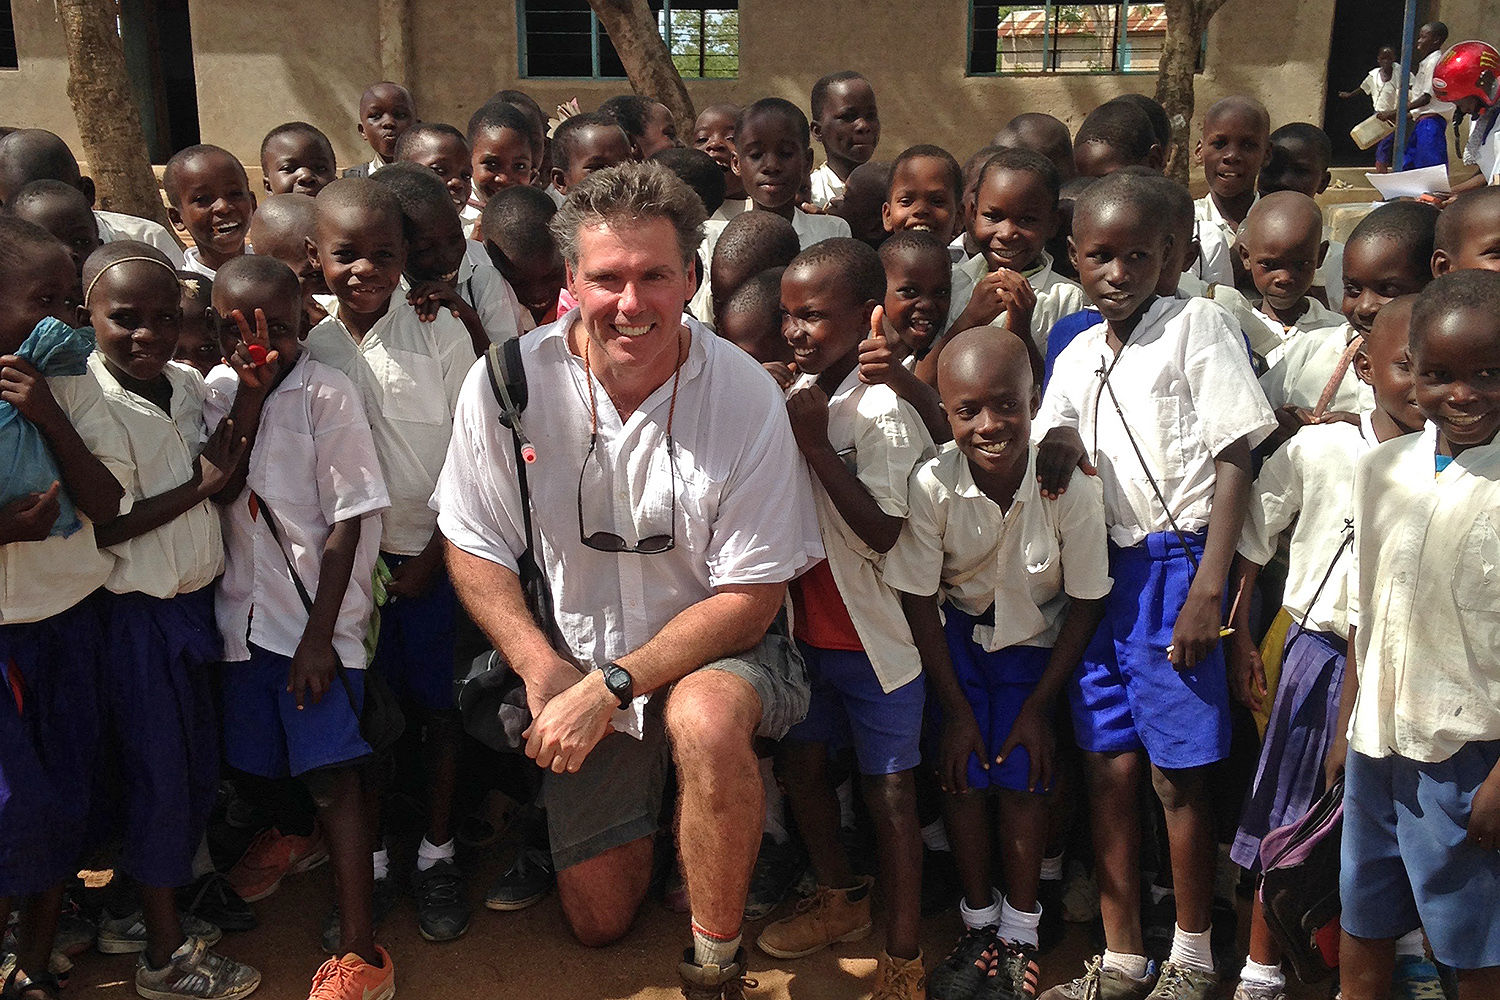 Visiting Max Perel-Slater '11 in Tanzania, Prof. McAlear joined members of the Maji Safi group on an educational trip to a local school.